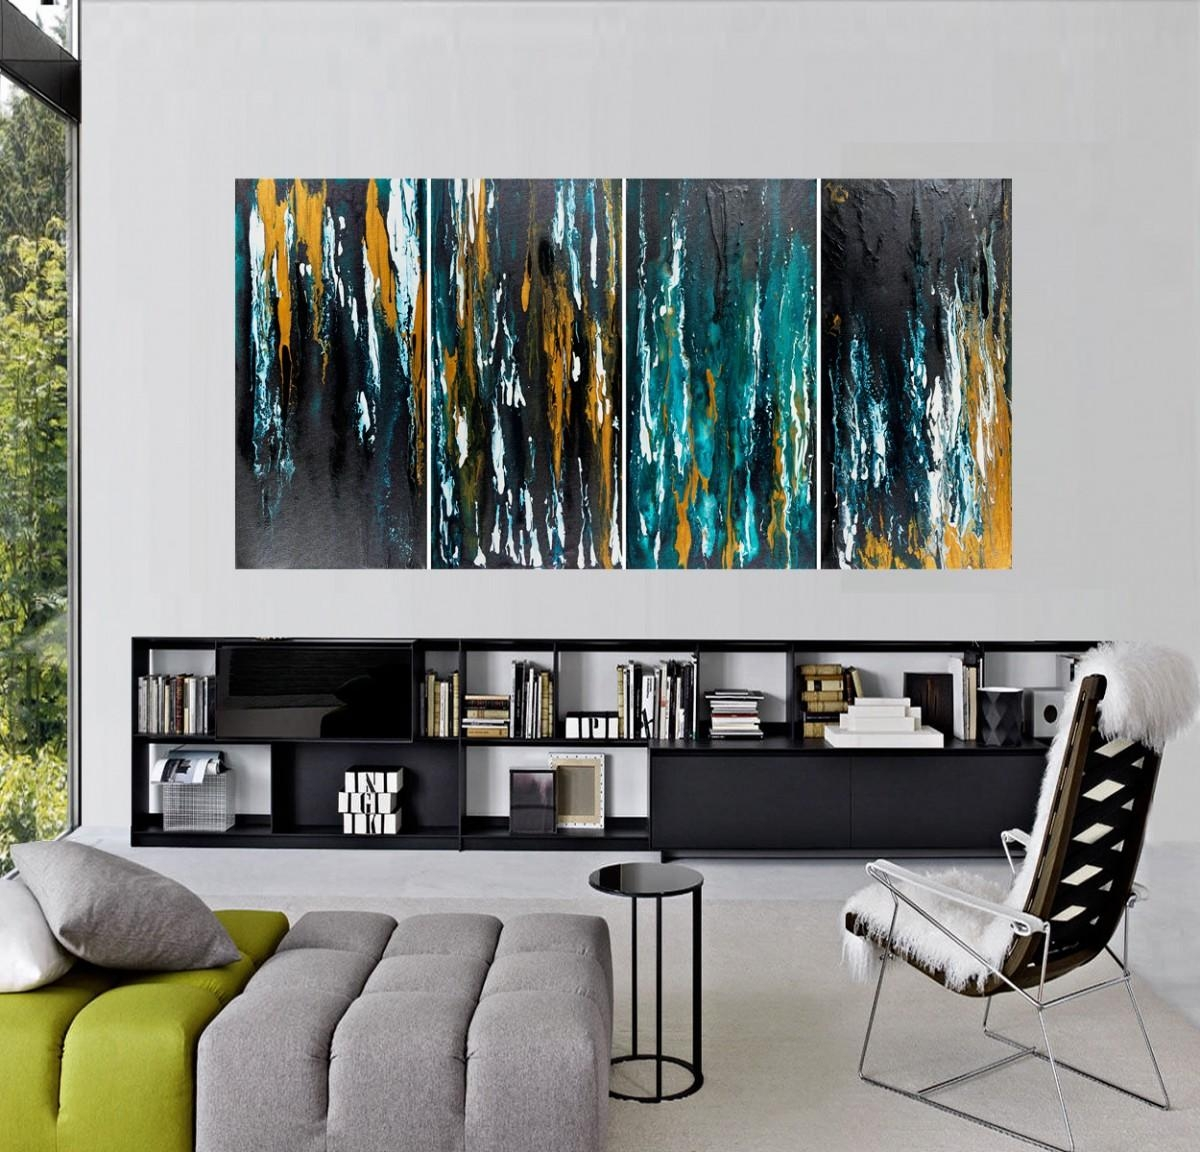 """First Snowfallqiqigallery 36""""x24"""" Original Modern Contemporary Intended For Turquoise And Black Wall Art (View 7 of 20)"""